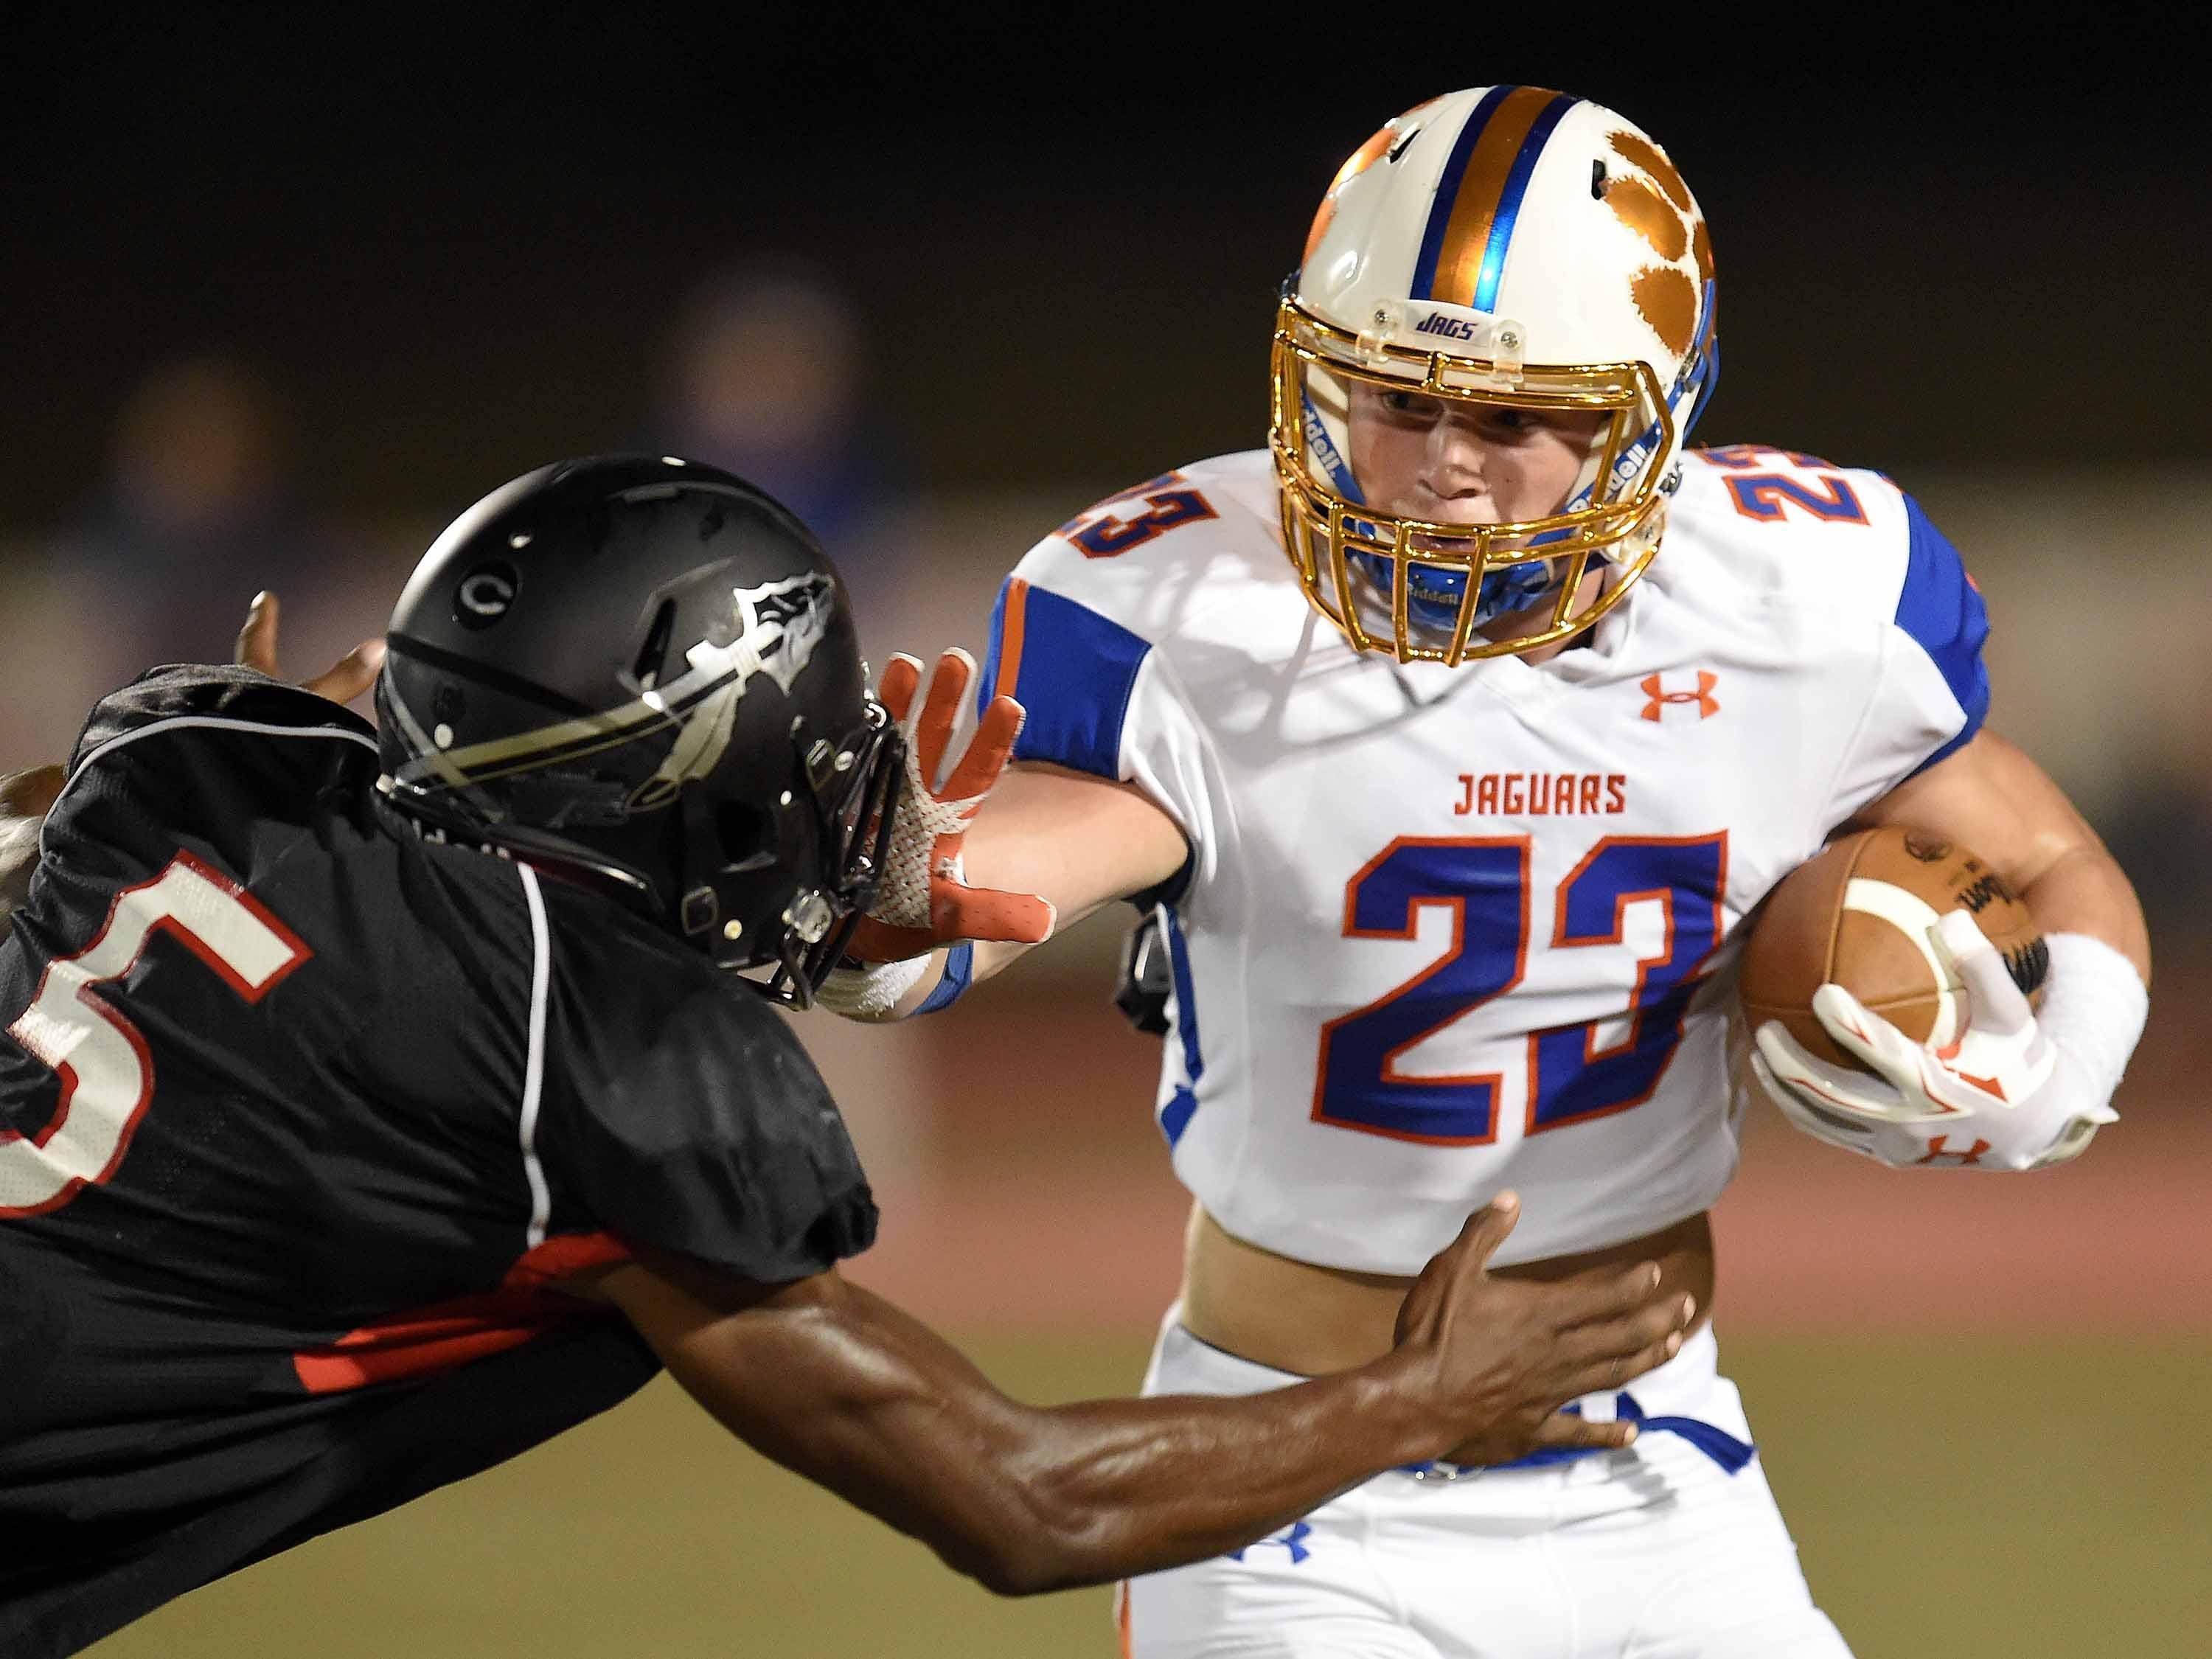 Madison Central's Will Brooks (23) stiff arm's Clinton's Cam Akers on Friday, September 25, 2015, at Clinton High School in Clinton, Mississippi.